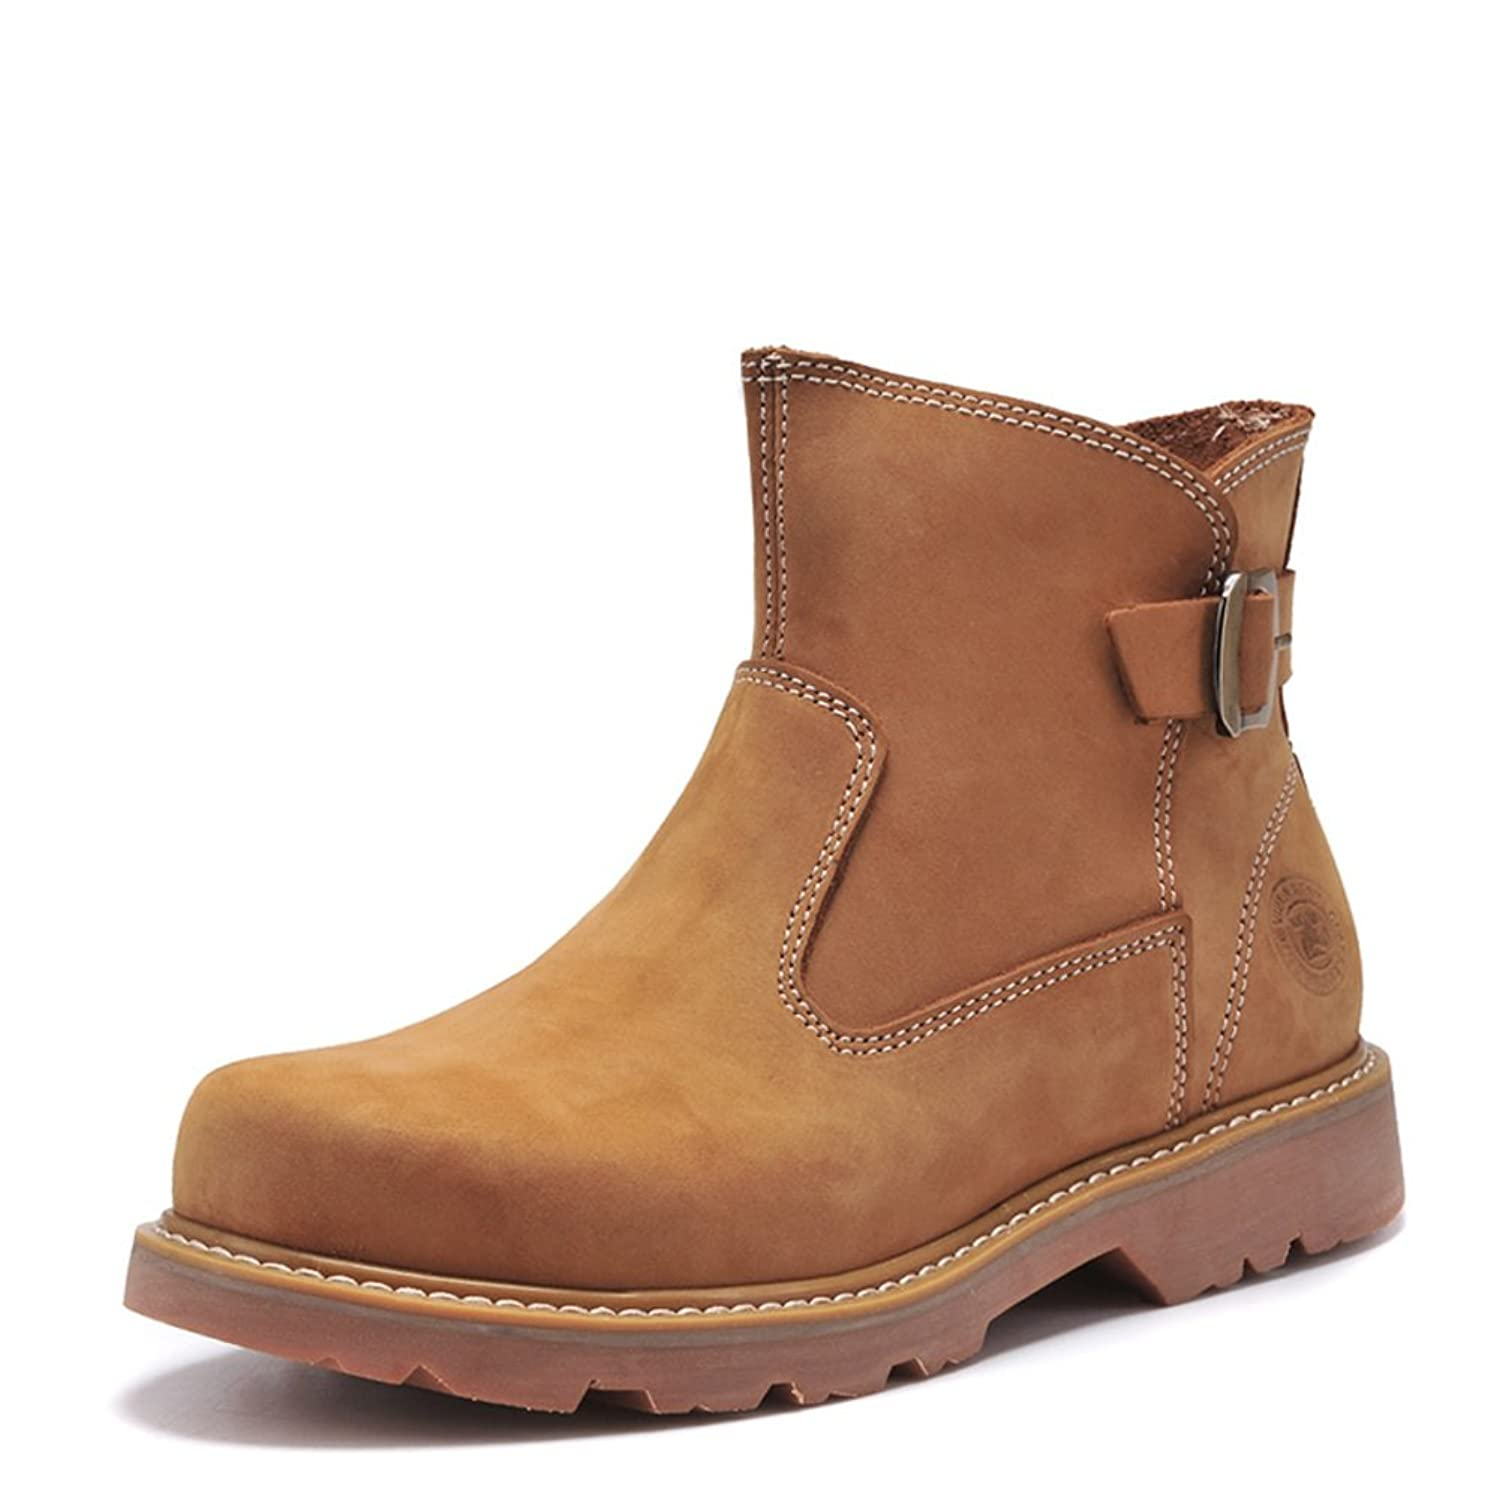 Winter leather boots men's boots Martin/Male tooling boots yellow boots/Desert boots